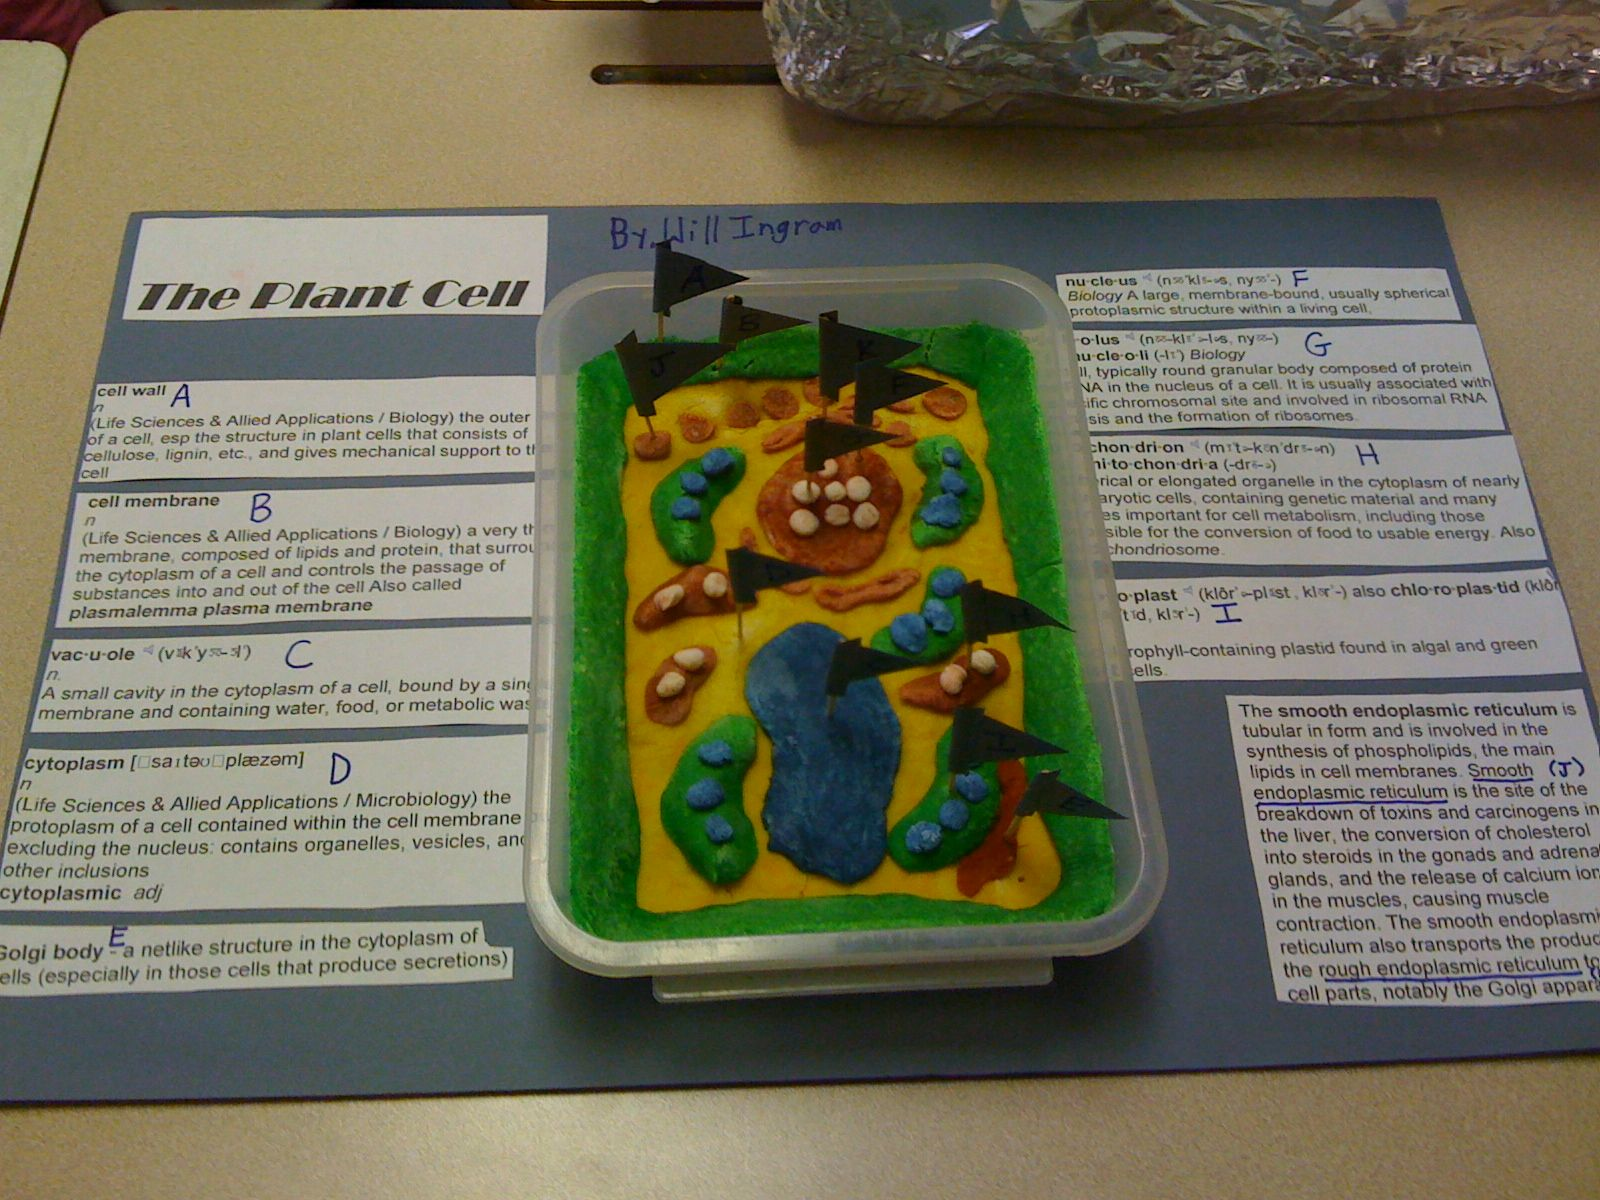 3d plant cell model project materials - Homemade cell model project ideas bing images